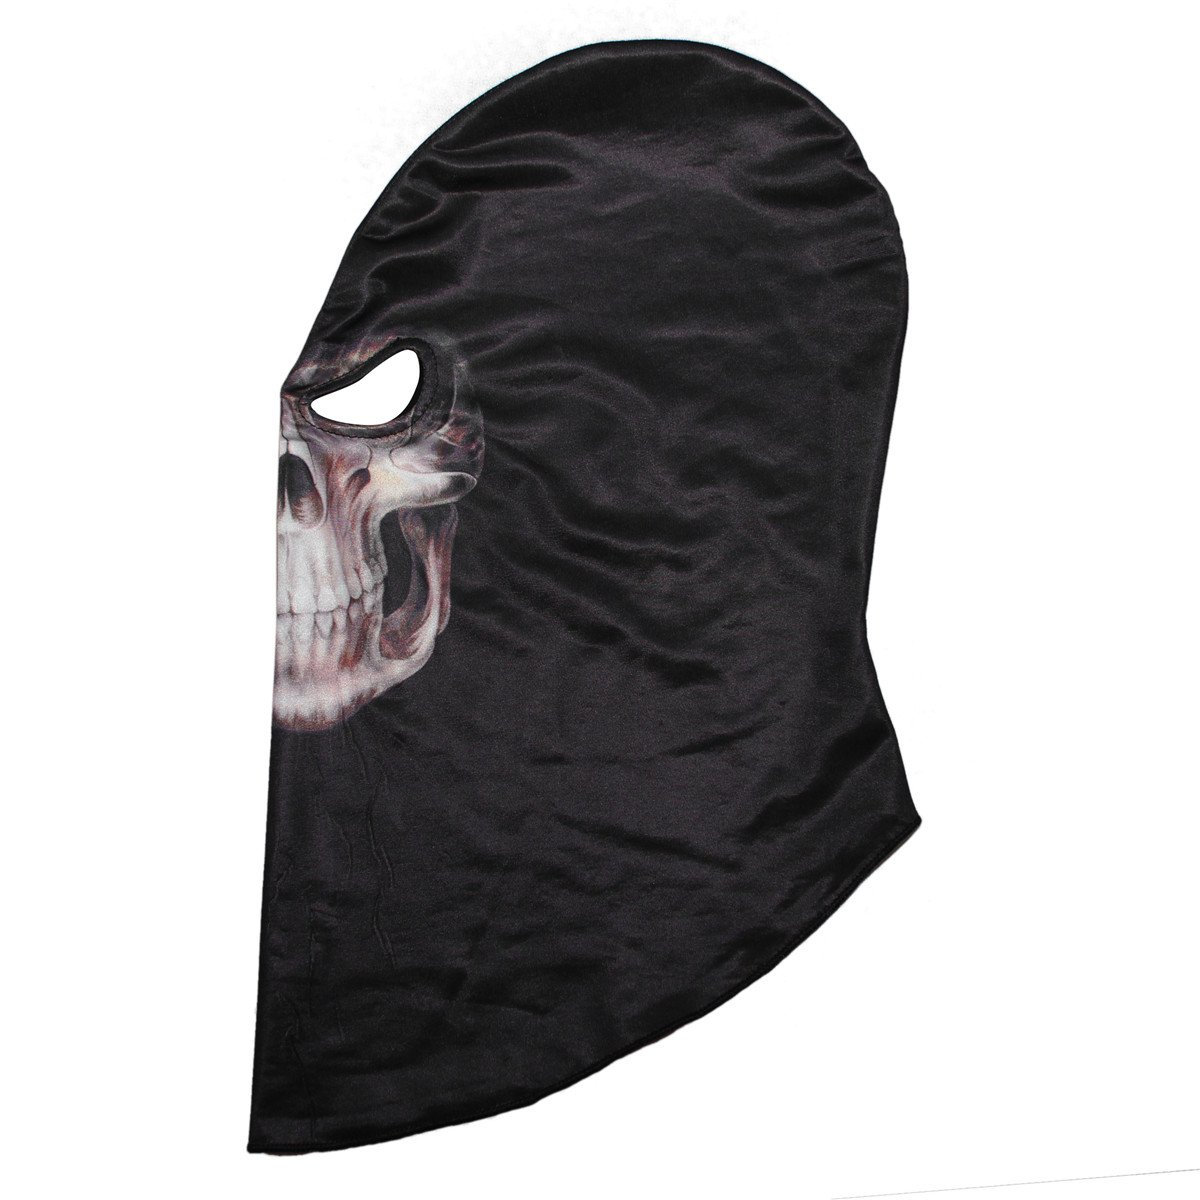 WTACTFUL Skeleton Skull Balaclava Ghost Death Masks Halloween Costume Cosplay Warmer Full Face Mask for Cycling Motorcycle Ski Outdoor Sport